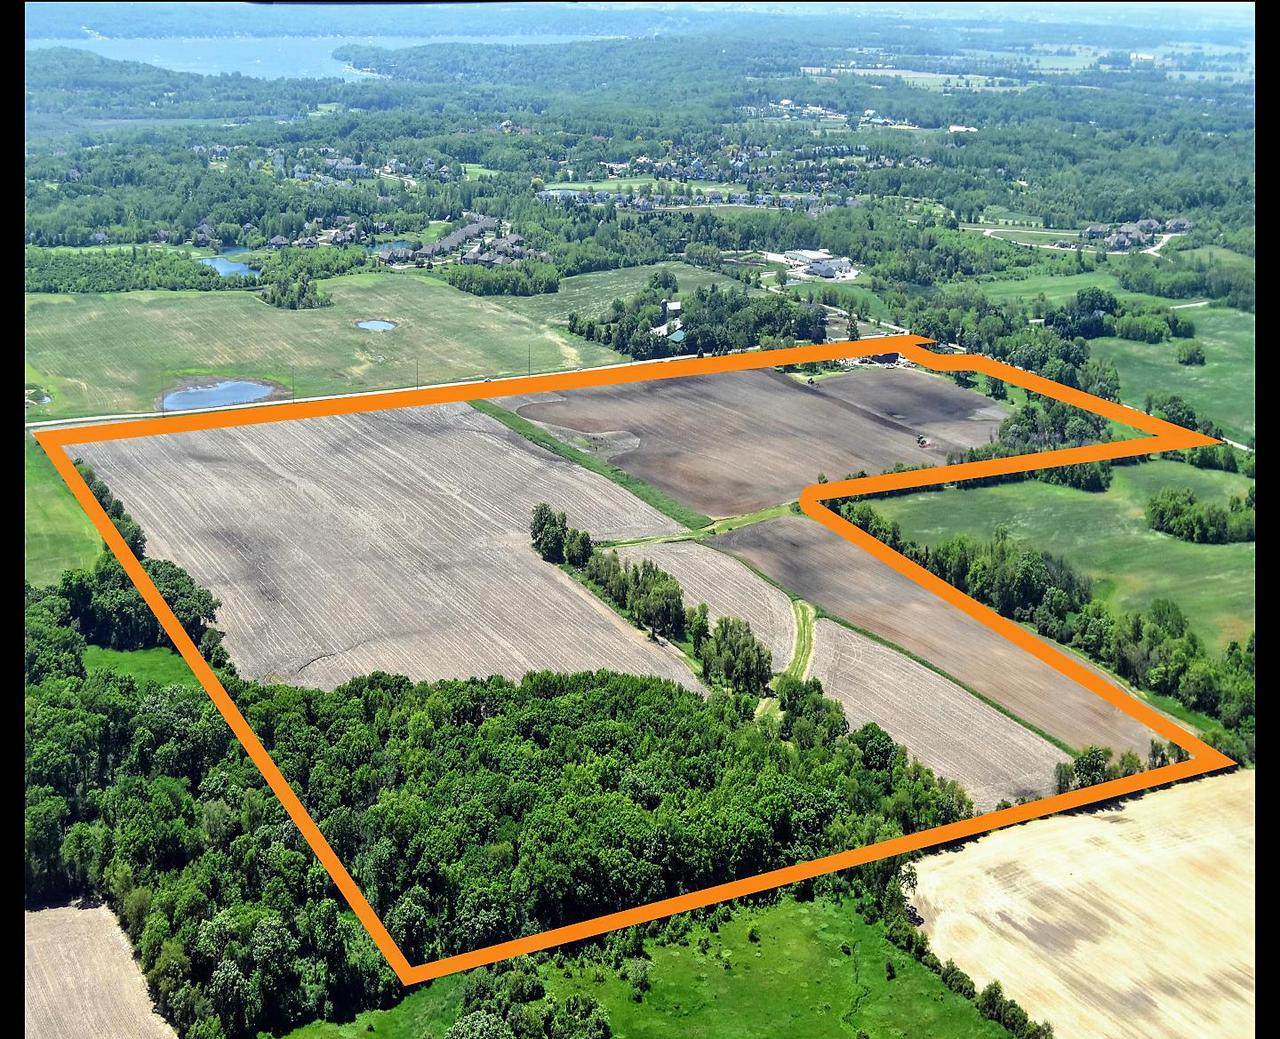 THIS PROPERTY HAS IT ALL!! 118+/- acre farm. 94+/- tillable acres (zoned A1) with drain tile throughout. Currently leased for 2020 crop season. 60x40 and 40x56 pole buildings, 4 bedroom house and buildings being sold AS IS CONDITION.  House needs some work and updates but very solid structure. Well maintained 8+/- wooded acres (zoned C2) with mowed trails, mature trees and hardwoods Property is full of wildlife and outdoor recreation, mowed pasture land with pond. Property is also being divided and sold as 35+/- acre proposed buildable sites. MLS#'s 1644671, 1644672. Located close to Lake Geneva, Delavan Lake, Lake Como and Geneva National! This property has been in the family for over 100 years. A MUST SEE!! Very easy to walk the property. Easy access to Interstate 43, Highways 12 and 50